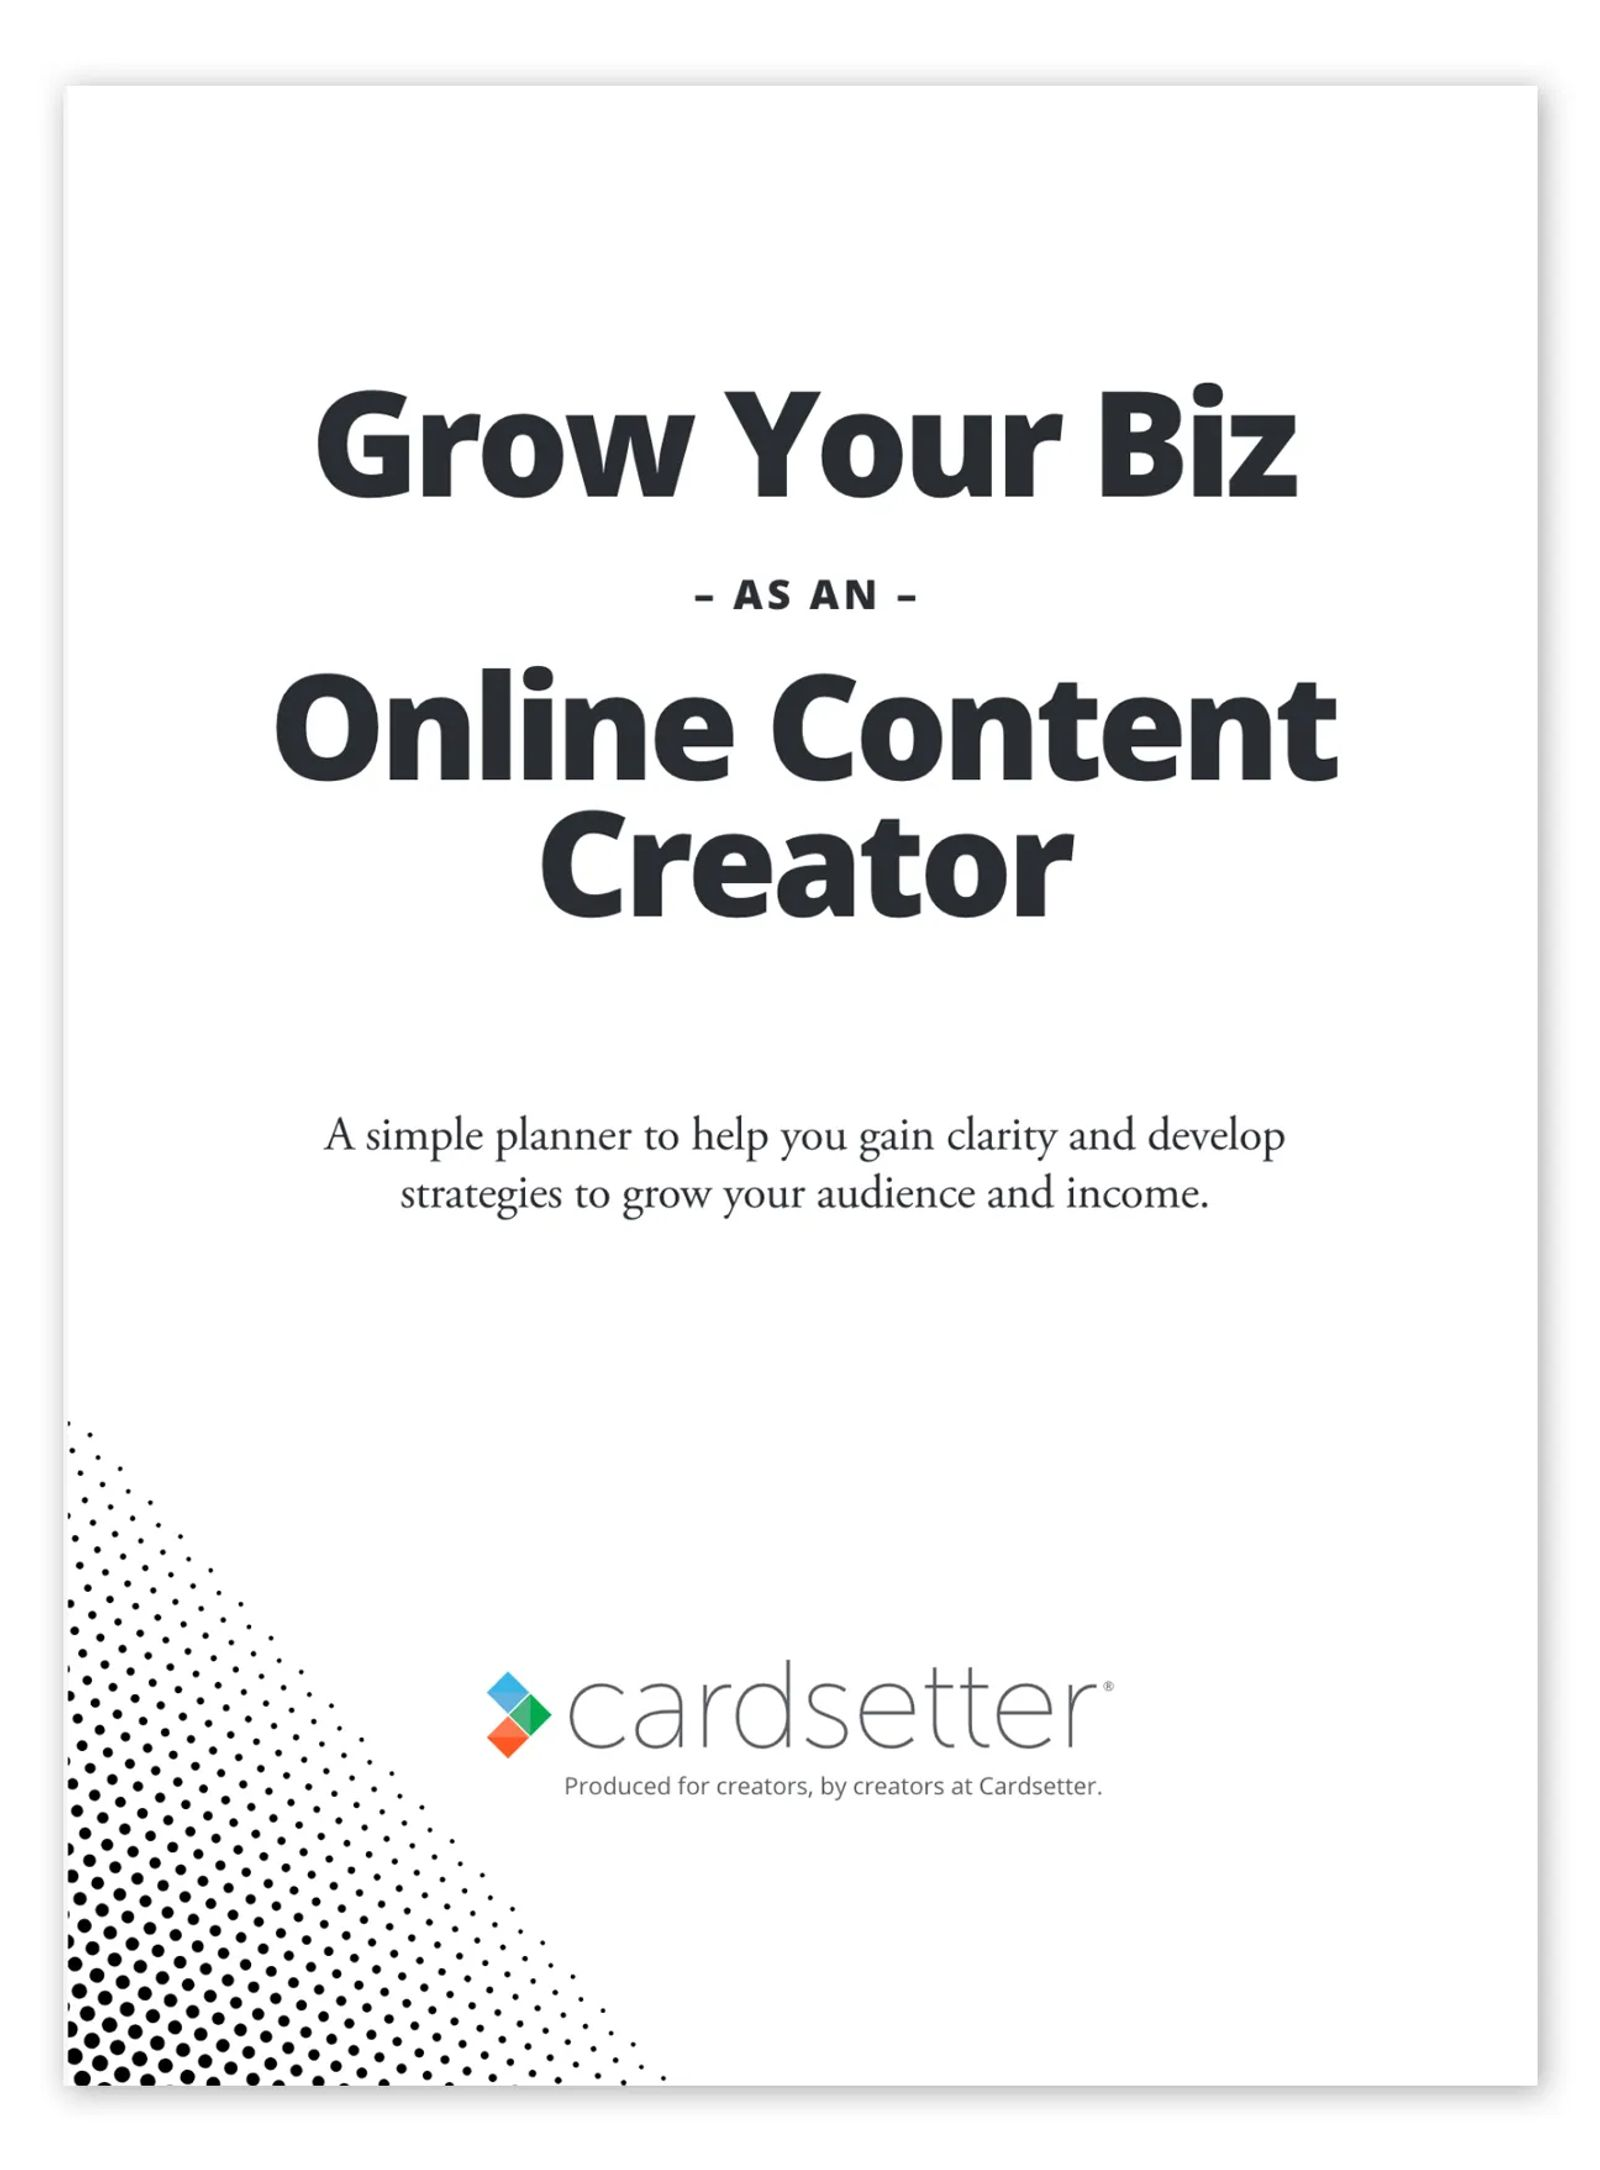 Grow Your Business as an Online Content Creator